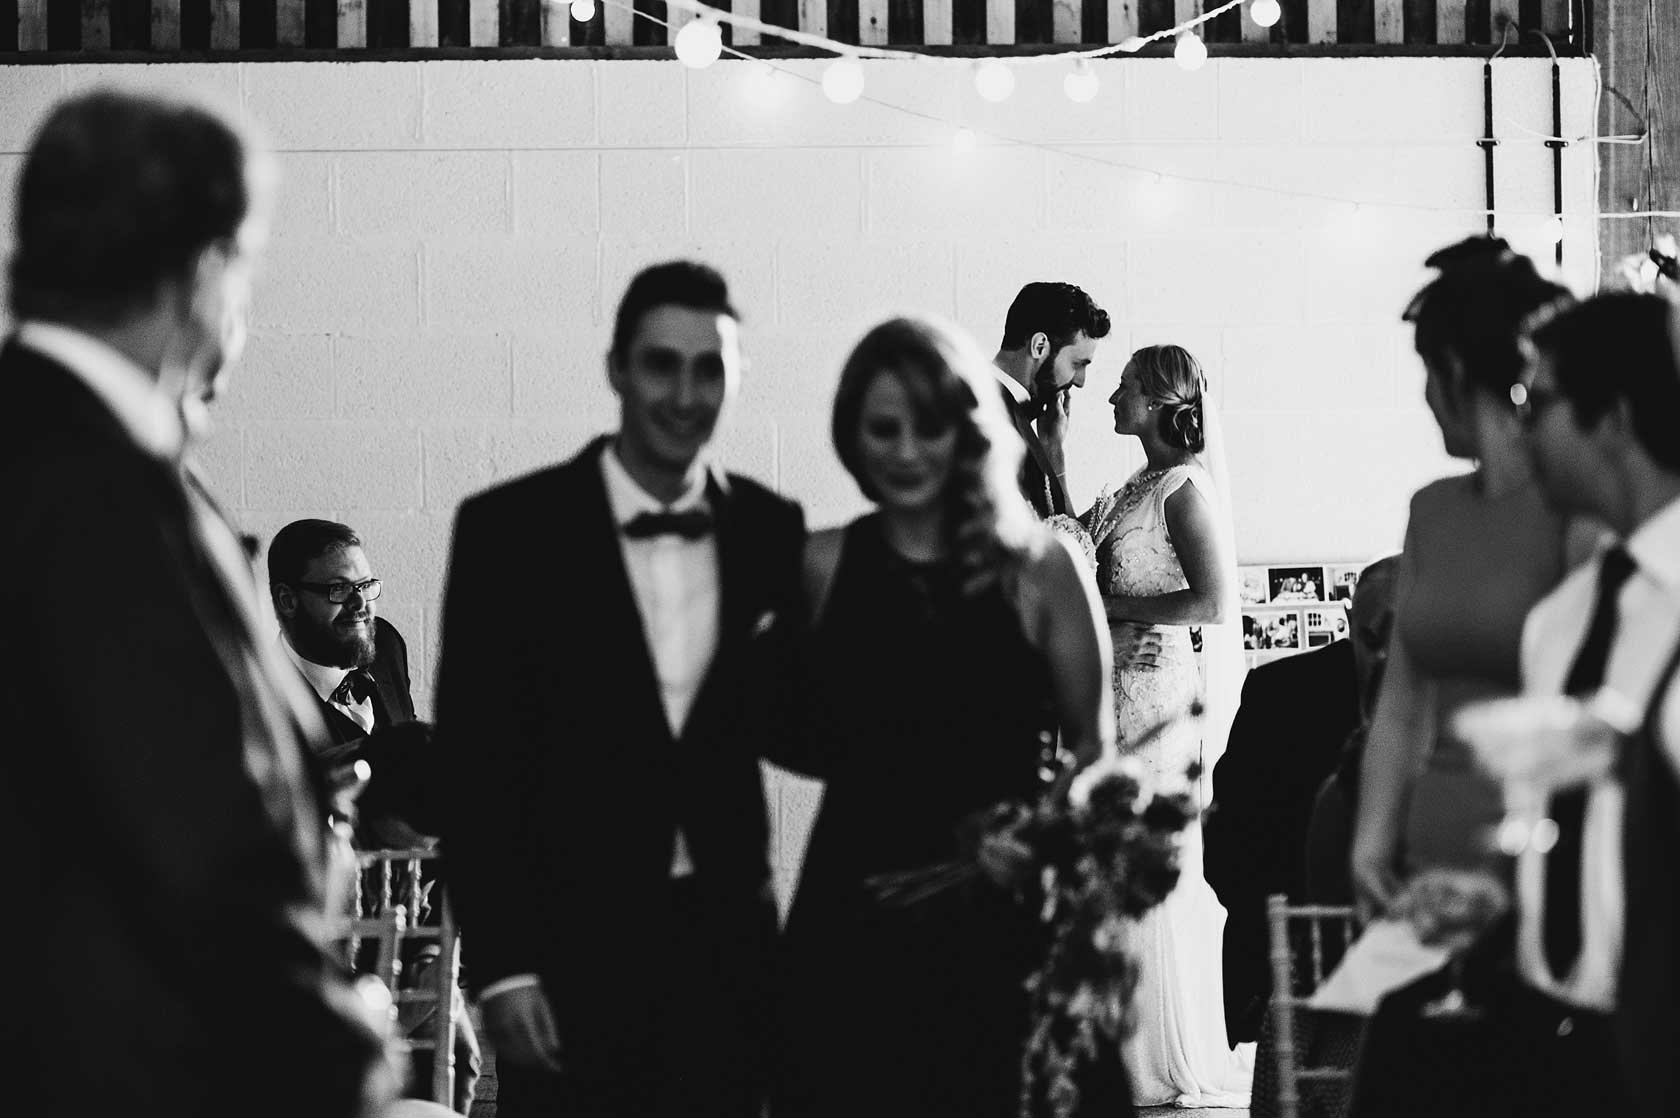 Reportage Wedding Photography at Barmbyfield Barns